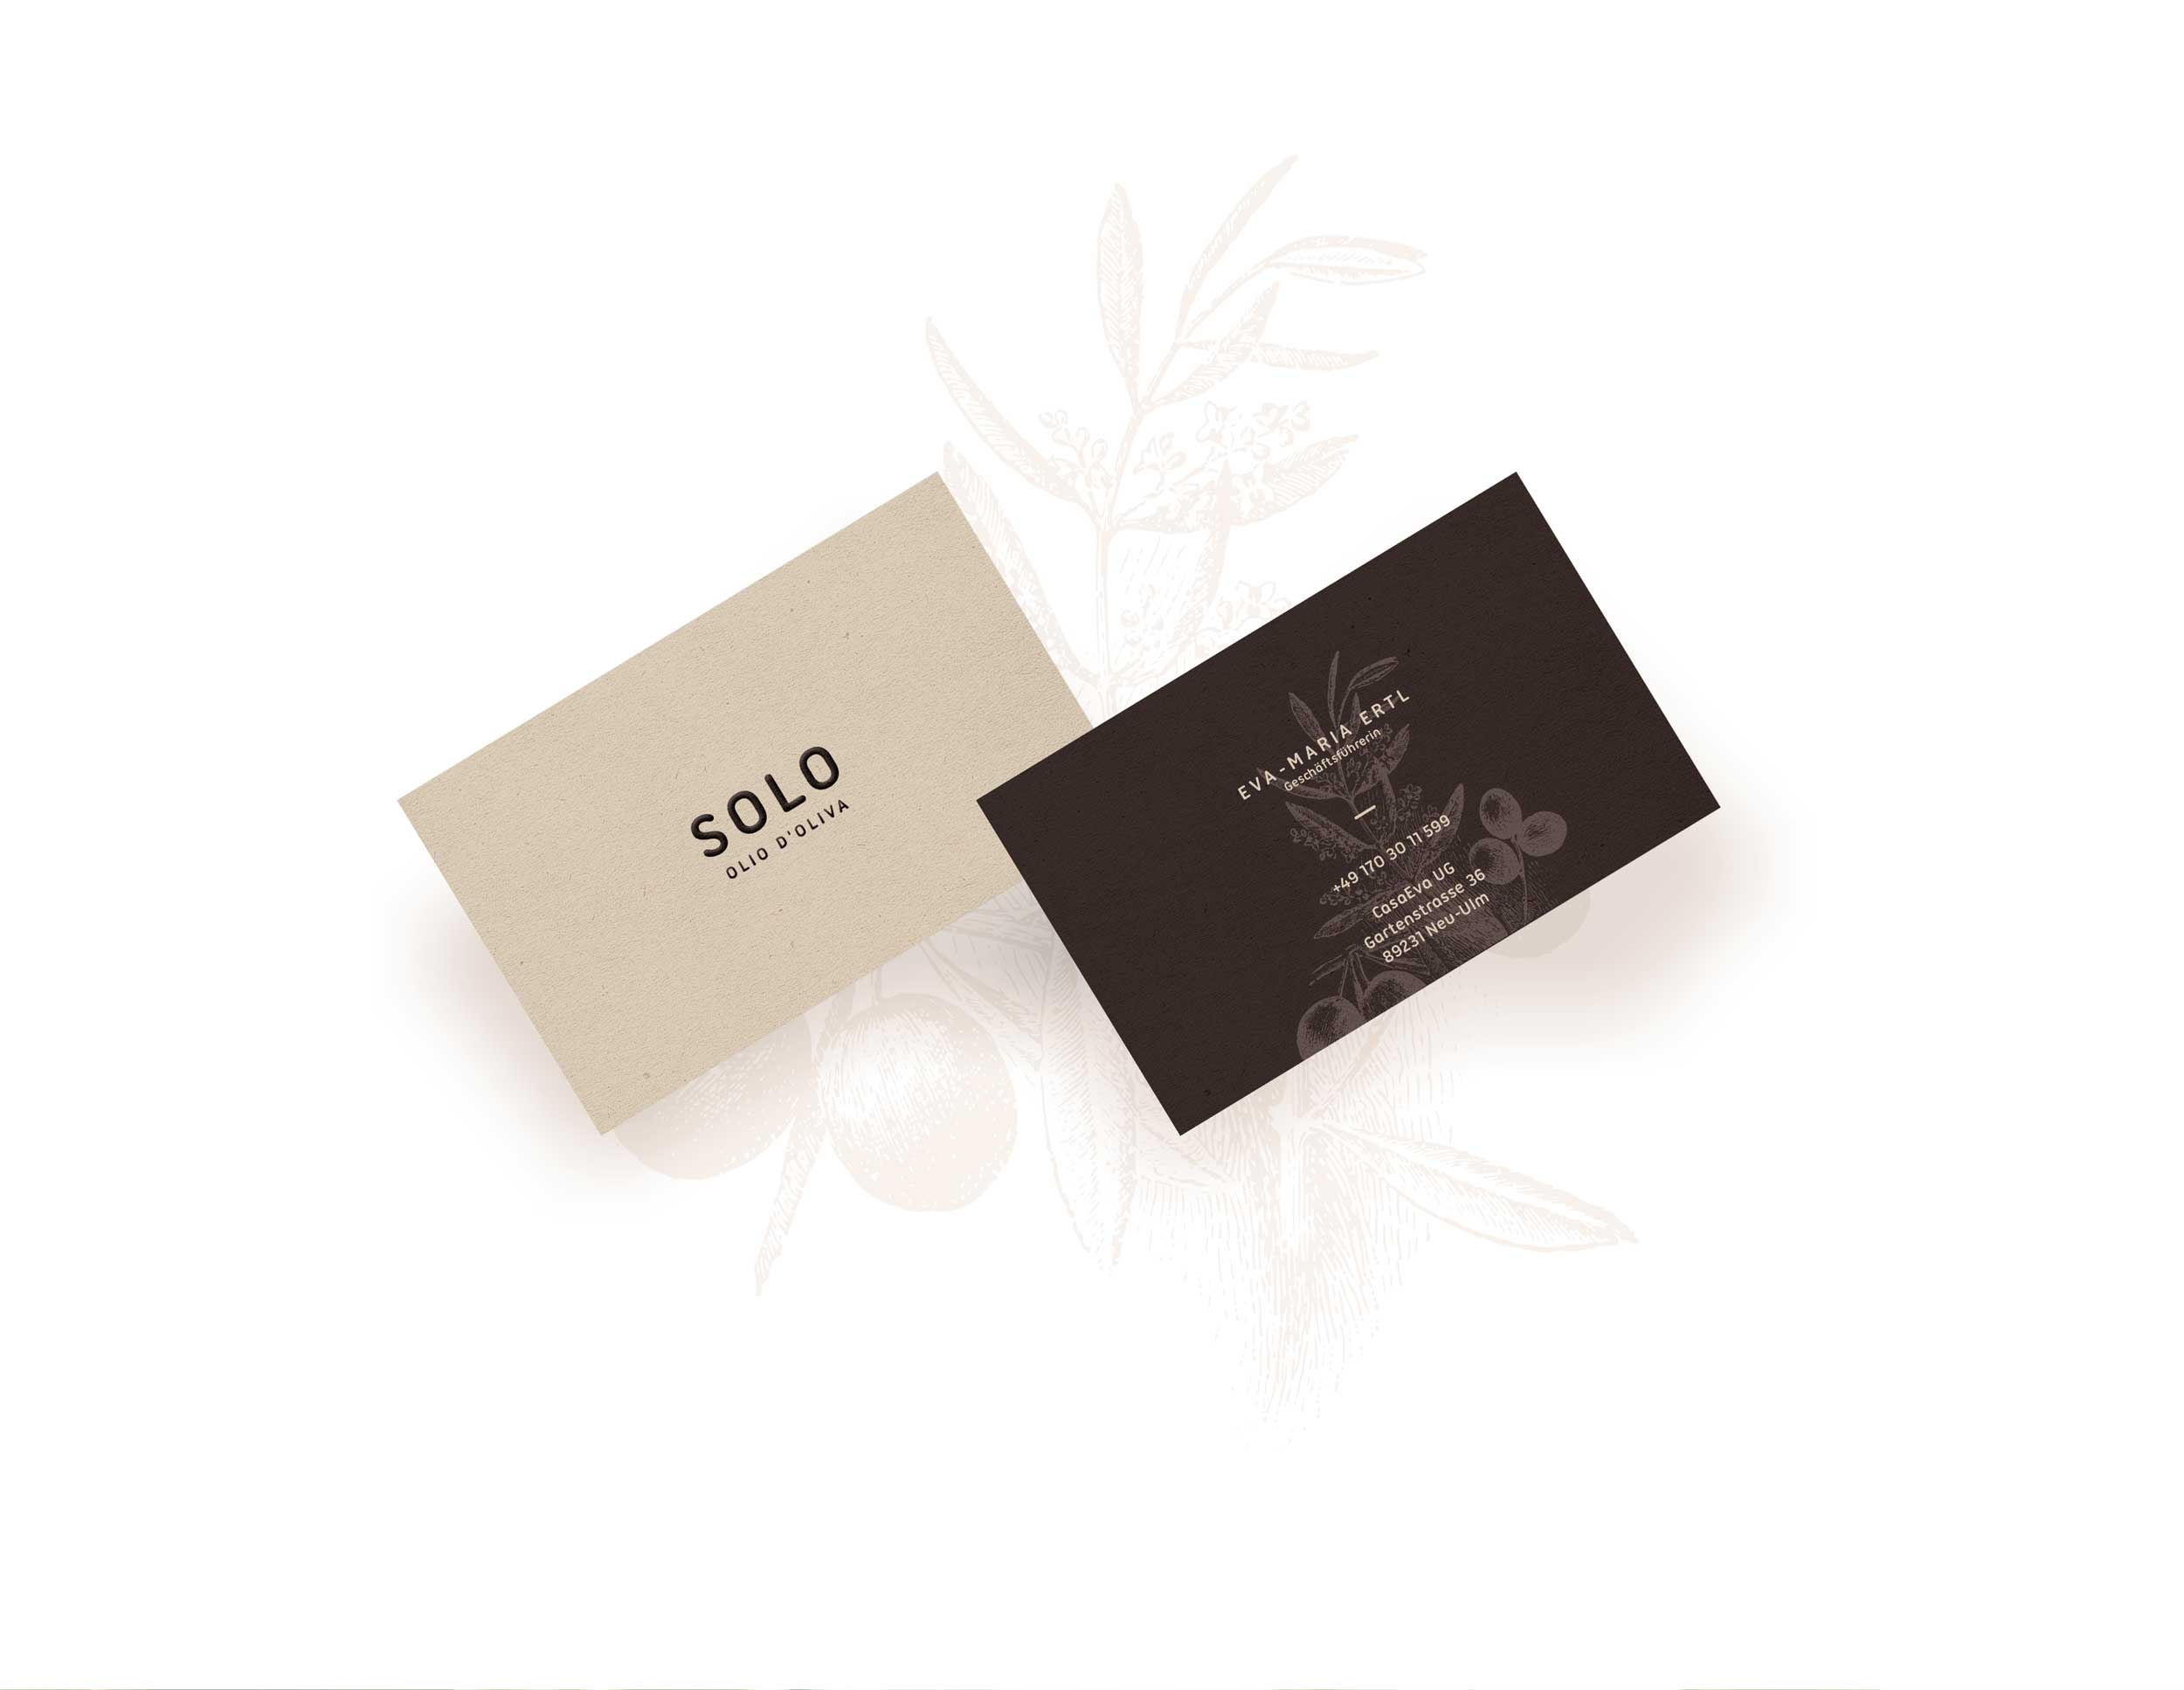 solo-olio-oliva-design-branding-packaging-label-logo-blockundstift-3